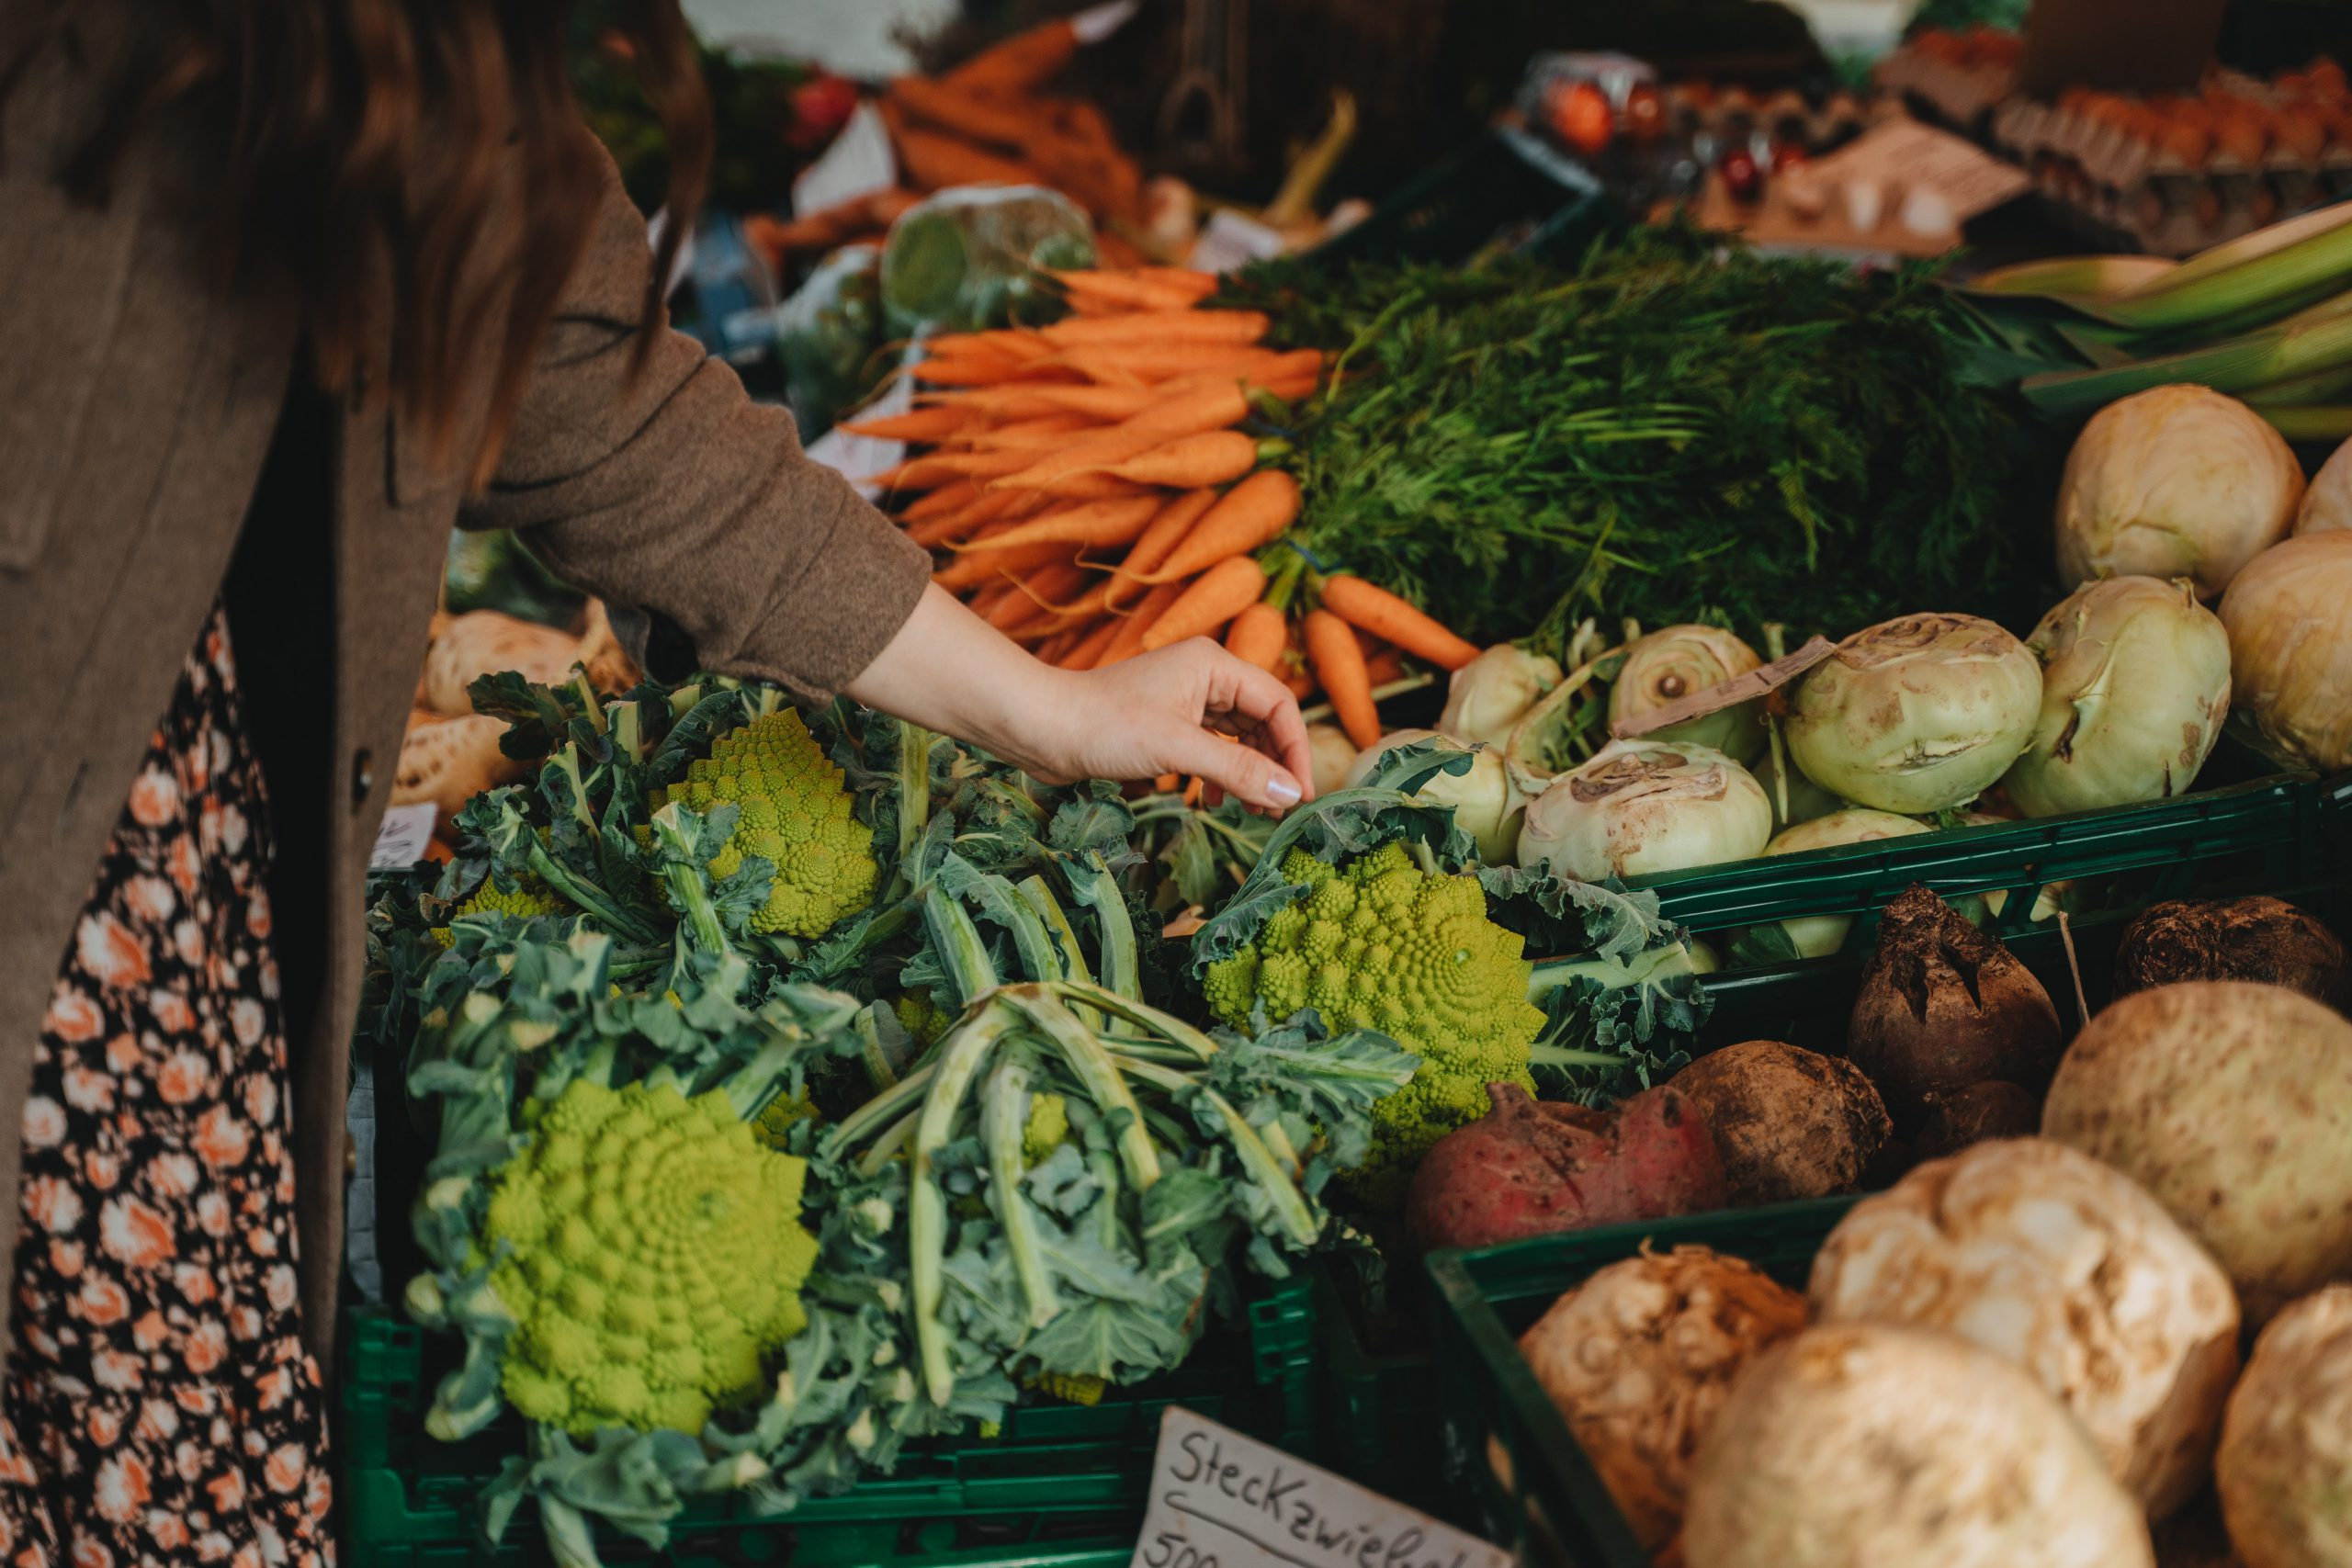 Farmers Market in your neighbourhood and community